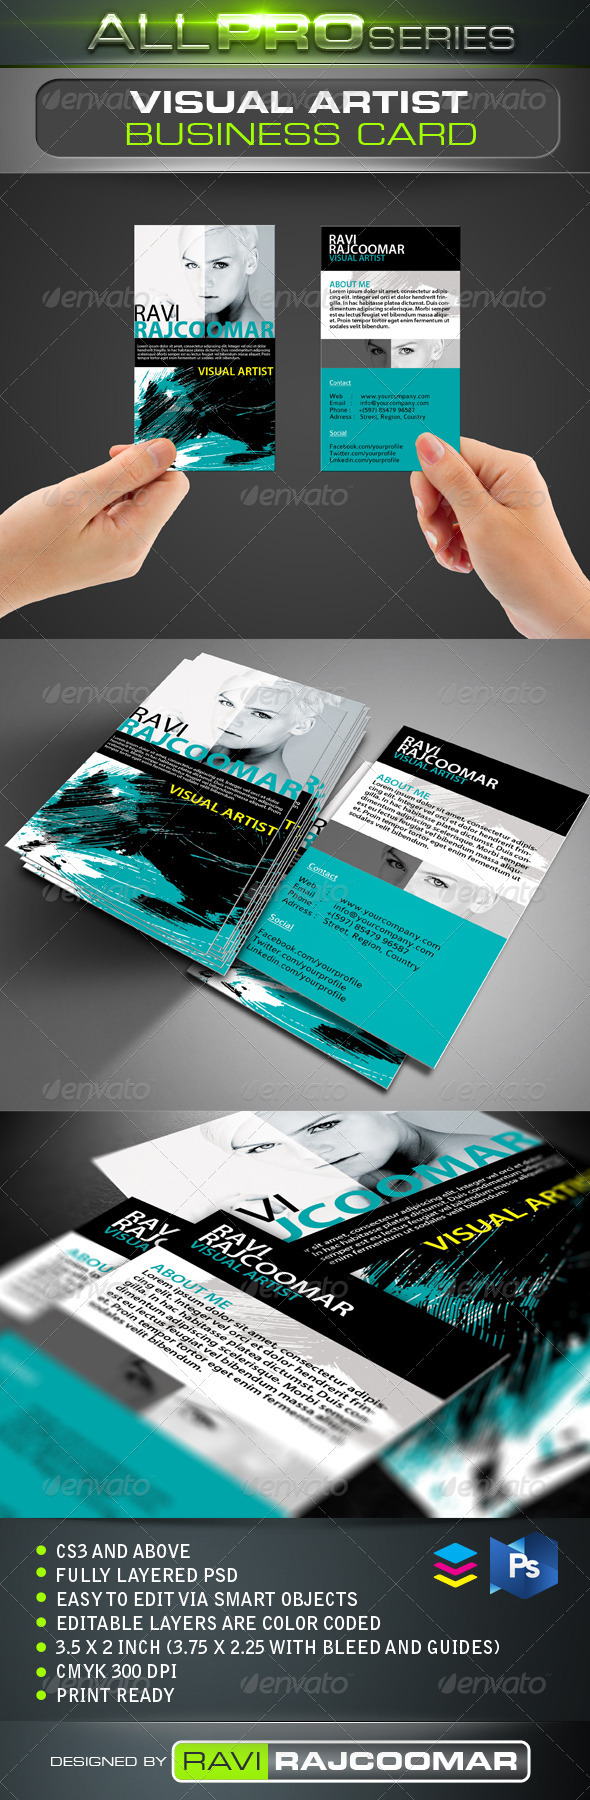 Visual Artist Business Card - Creative Business Cards